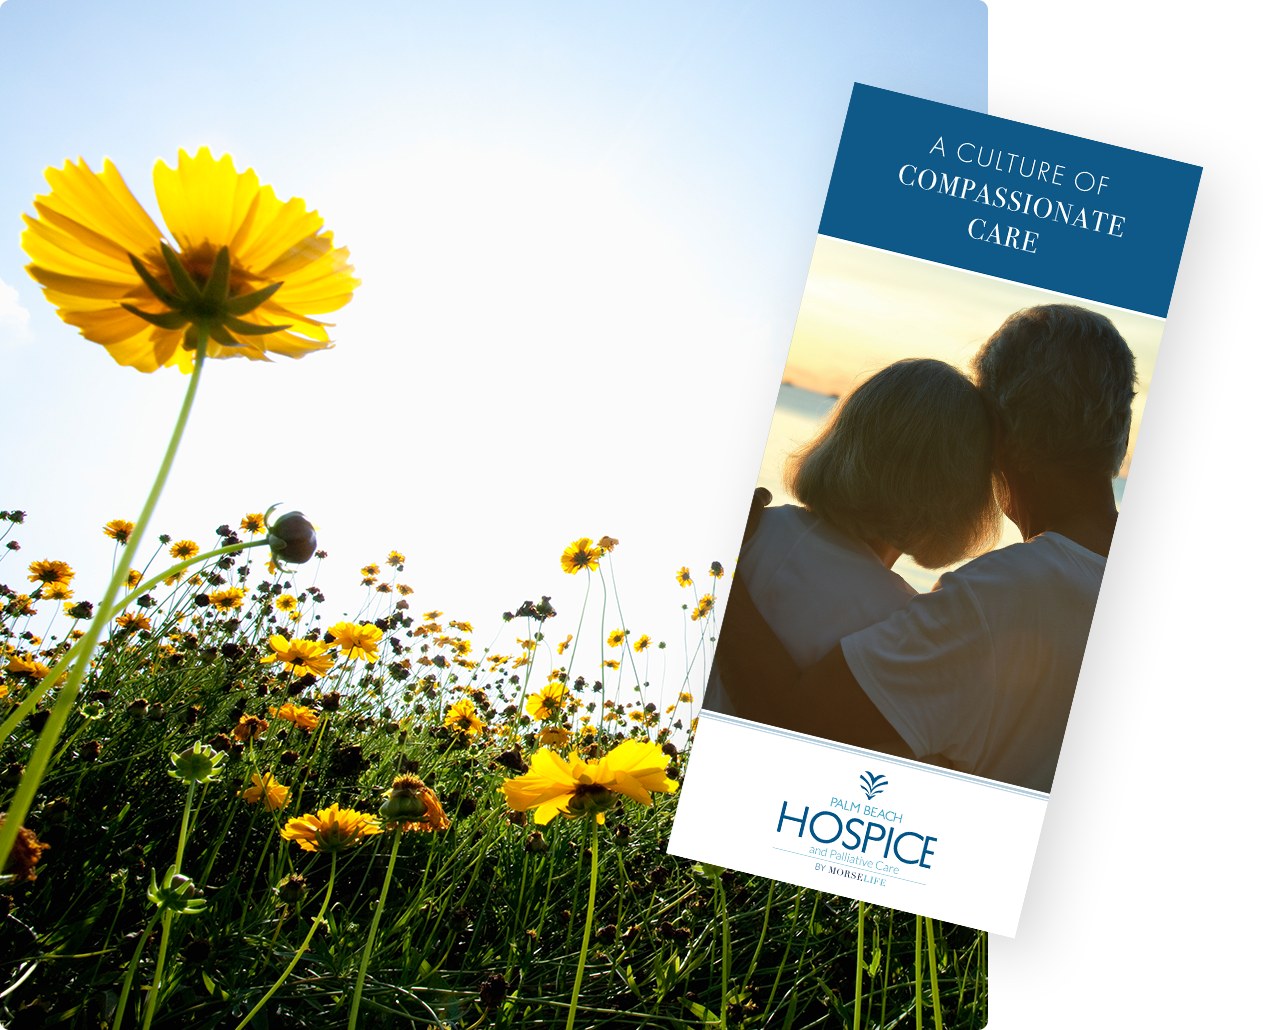 Hospice brochure with yellow flowers, compassionate, end of life care, hope, peace of mind, terminal illness